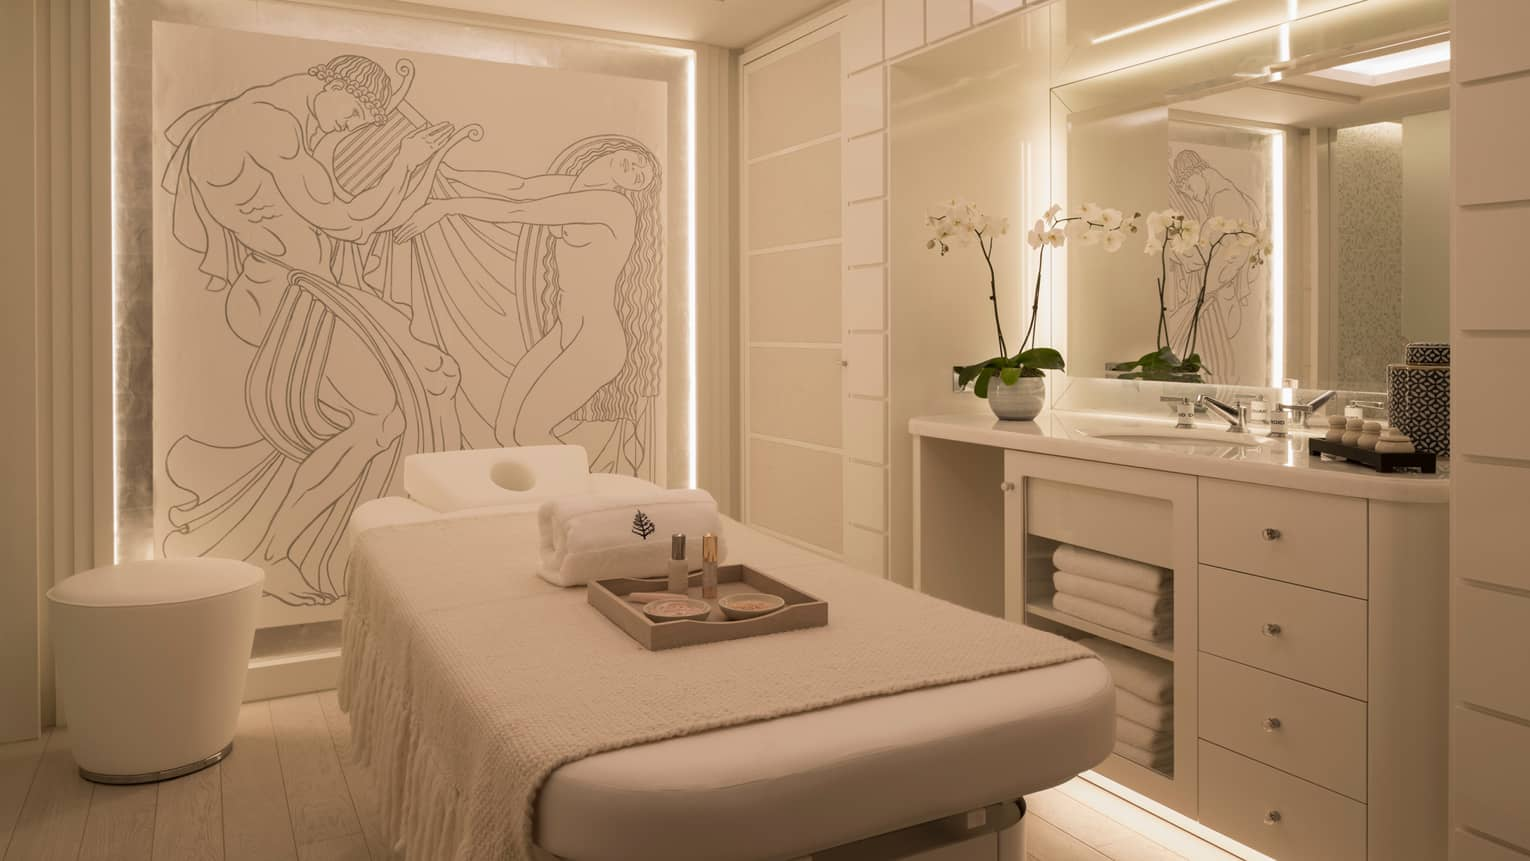 VIP Spa Treatment Room bed with tray, towels under mural, orchid on vanity